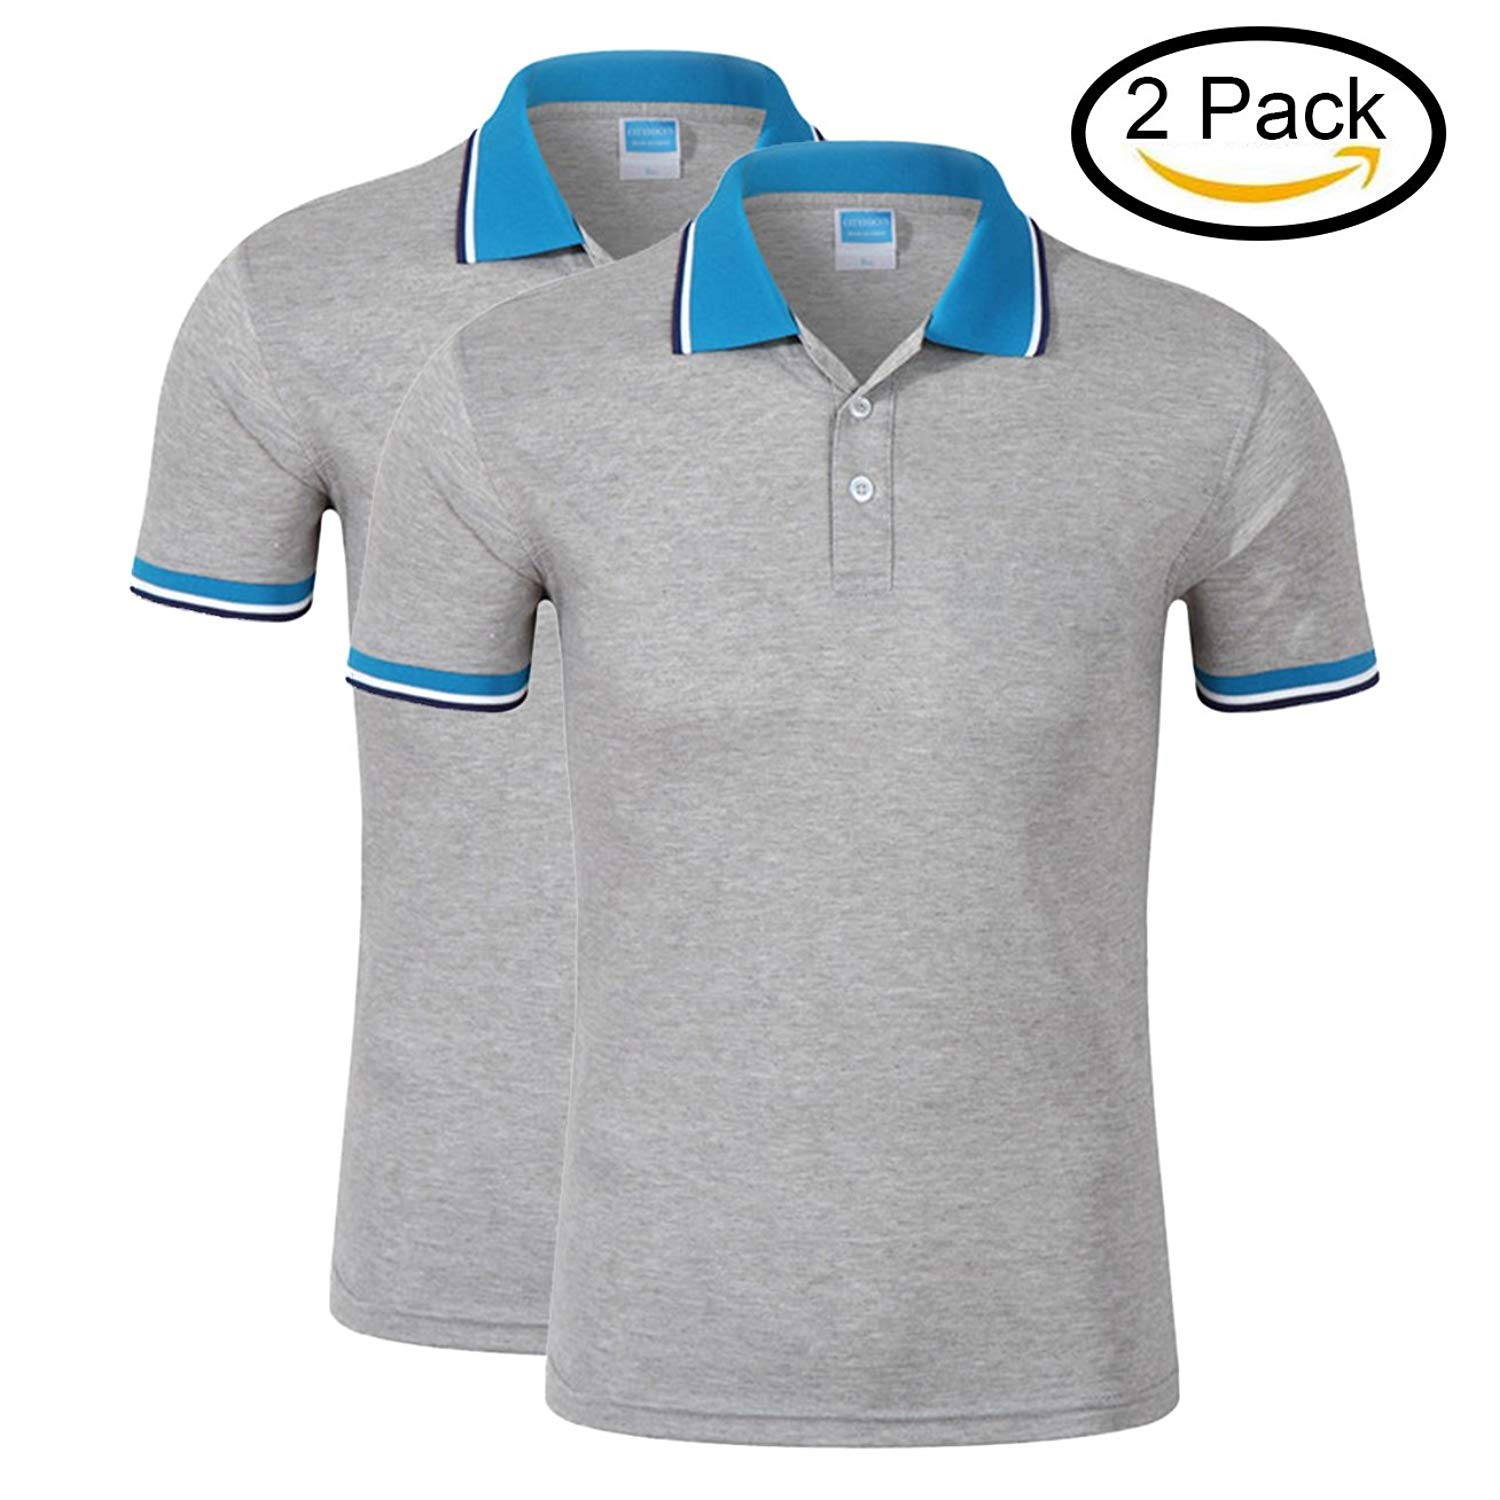 6fa28af5 Get Quotations · Averywin Ladies Polo Shirts Pack of 2, Womens Polo Shirt  Summer Tennis Polos T Shirts